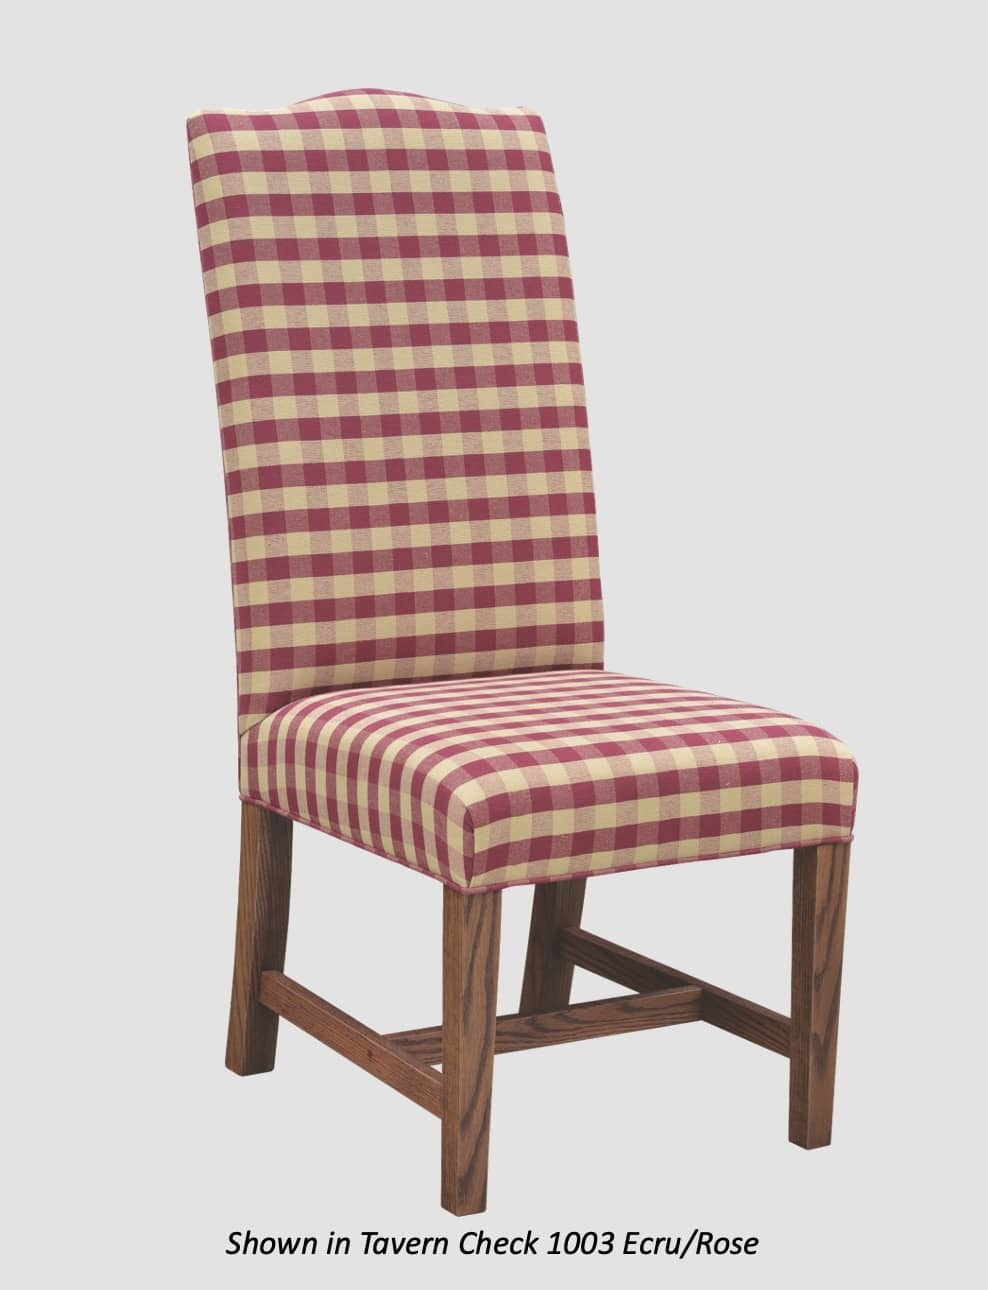 Town & Country Furnishings Lincoln Dining Chair - High Back/Crown Top from the American Country Collection